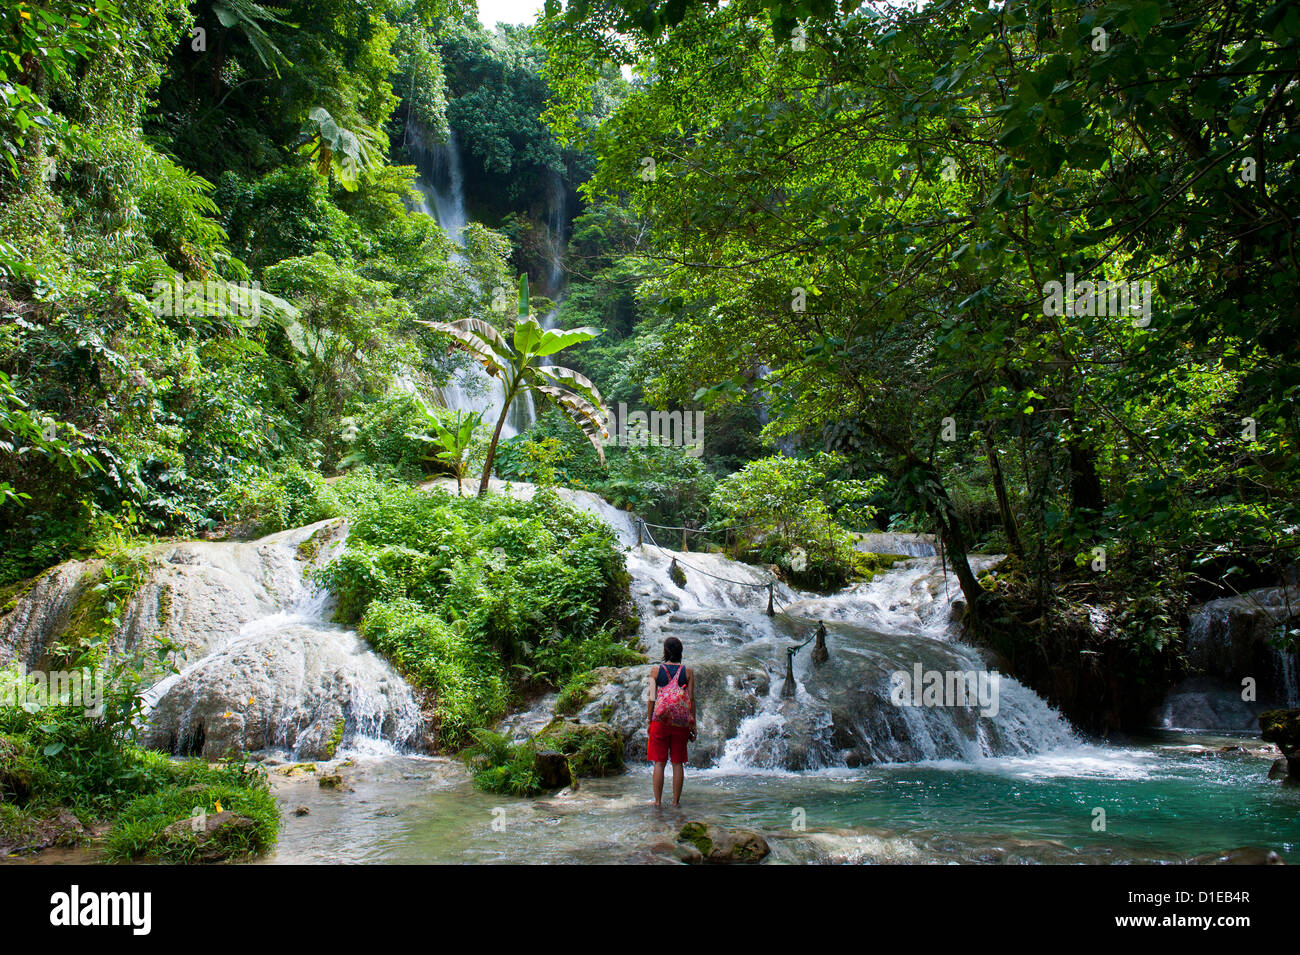 Woman looking at the beautiful Mele-Maat cascades in Port Vila, Island of Efate, Vanuatu, South Pacific, Pacific - Stock Image